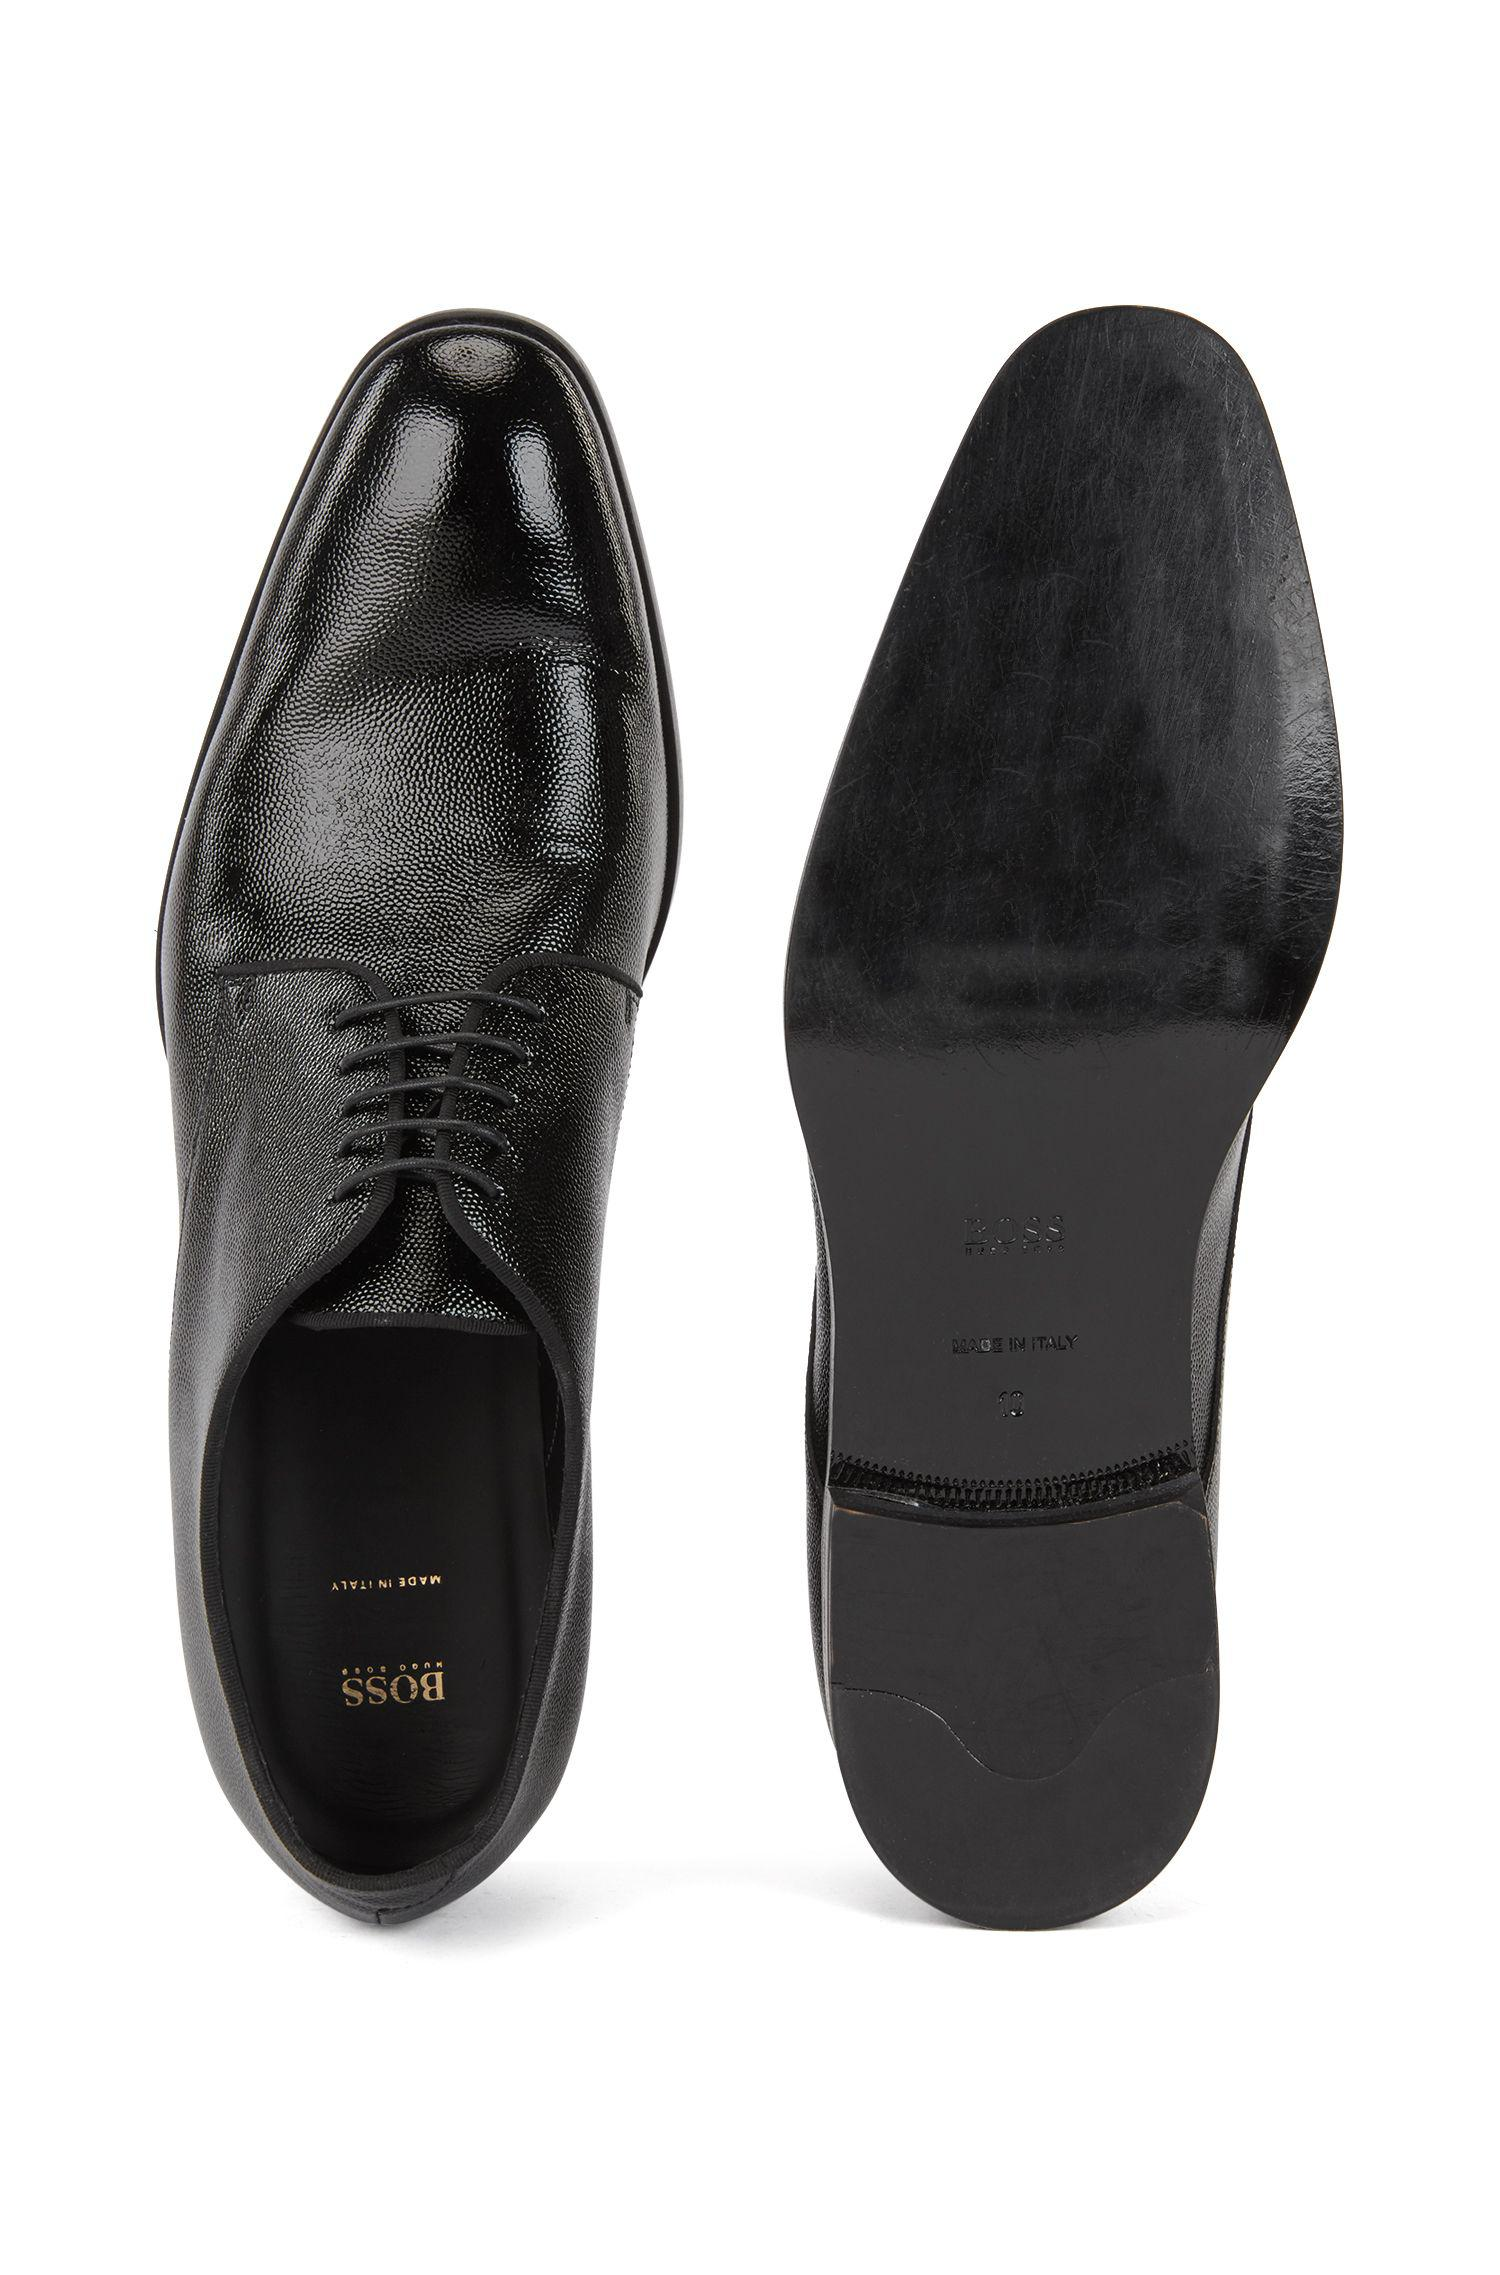 8eb4da7b1 BOSS Italian-made Derby Shoes In Emed Patent Leather in Black for Men -  Save 30% - Lyst